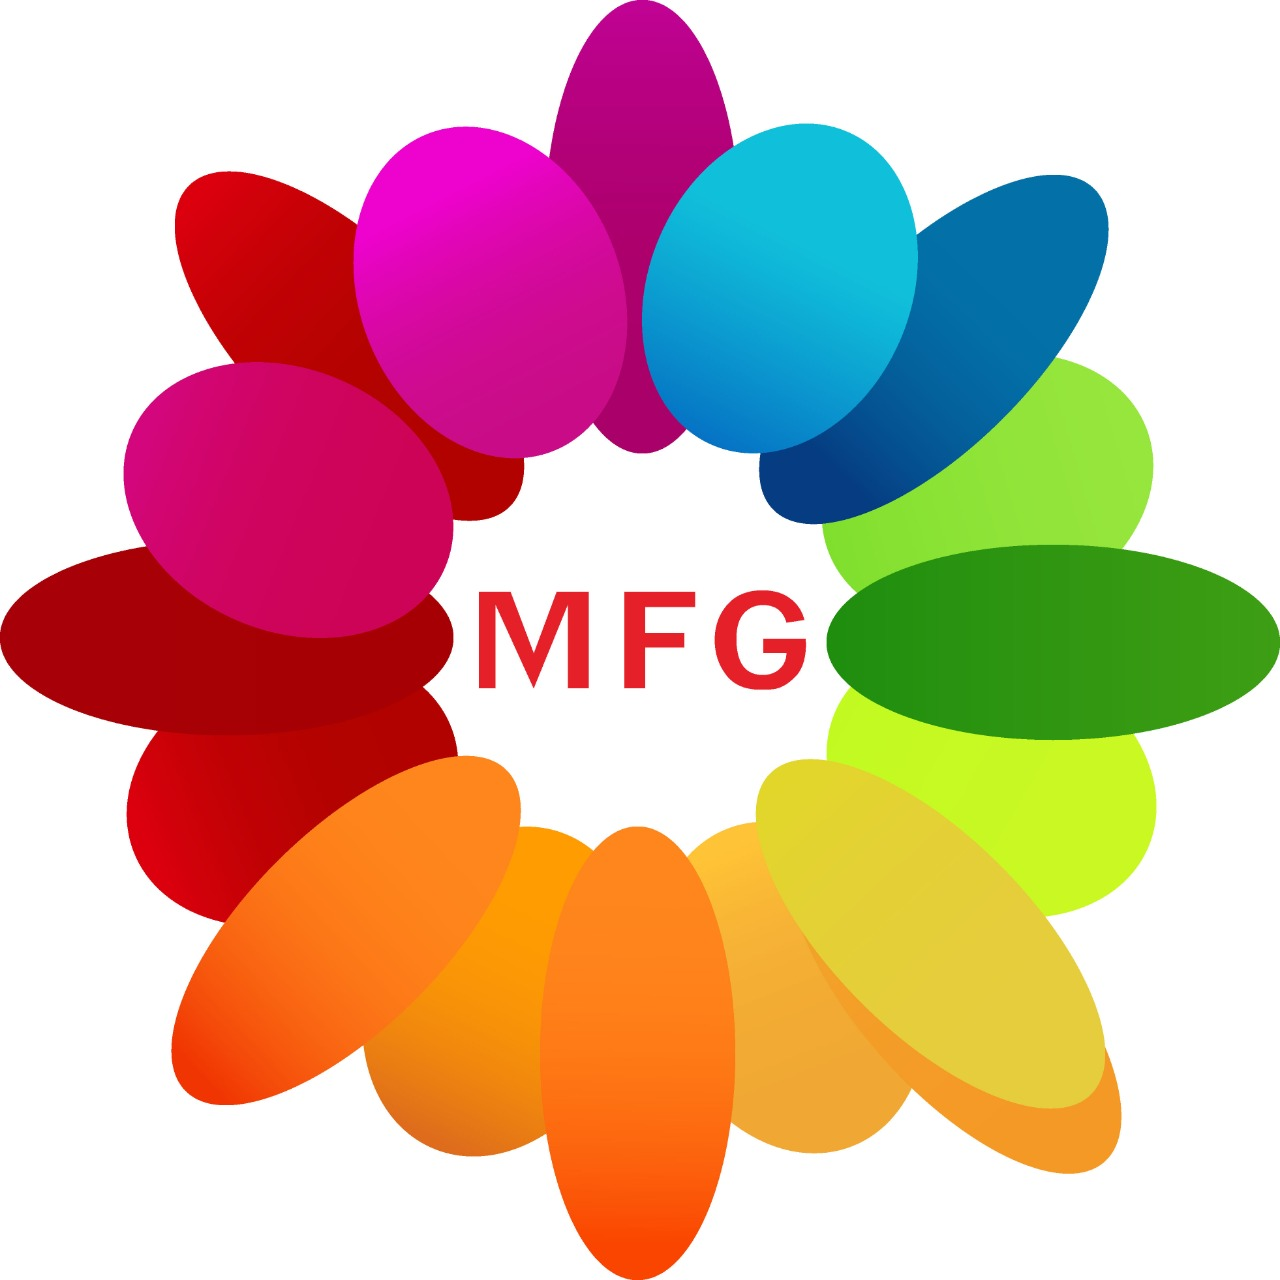 2 Kgs Fruit Basket With Flowers Arrangement Myflowergift